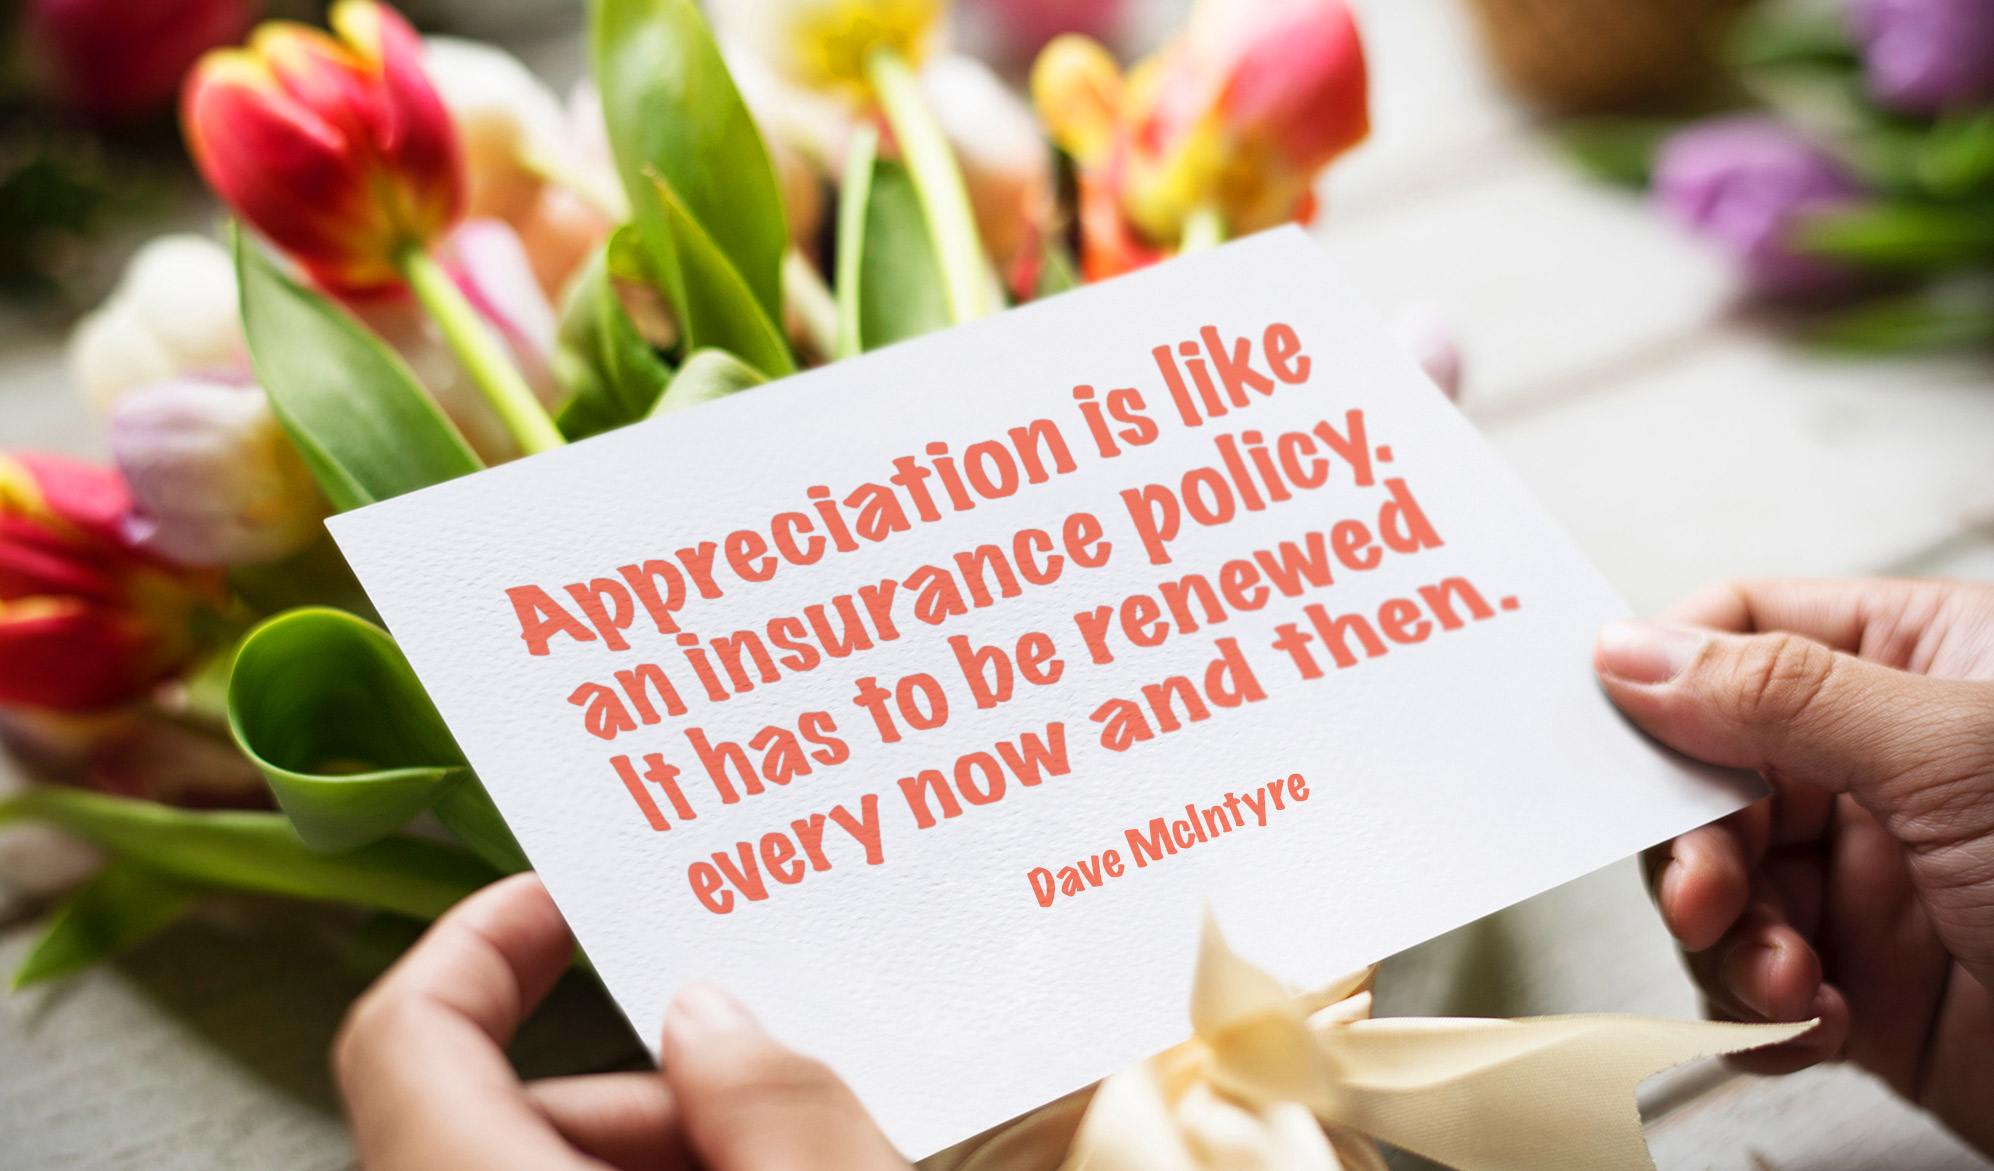 daily inspirational quote image: a bunch of flowers in the background, and a card with the daily quote in the foreground